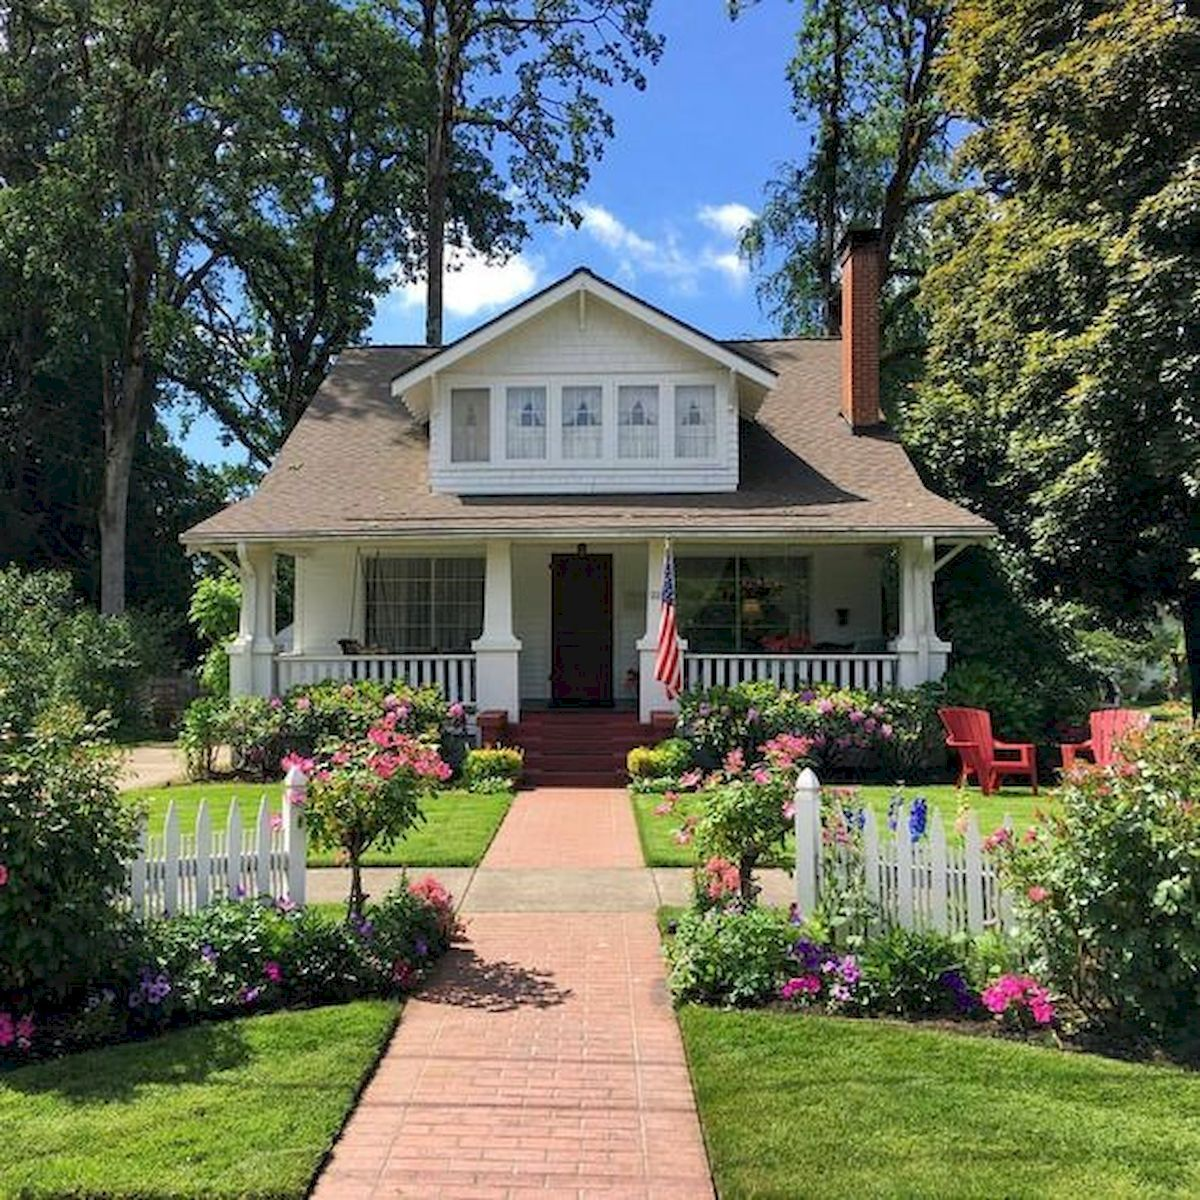 Awesome 40 Best Bungalow Homes Design Ideas Https Livingmarch Com 40 Best Bungalow Homes Tiny House Plans Small Cottages Craftsman Style Homes Bungalow Homes